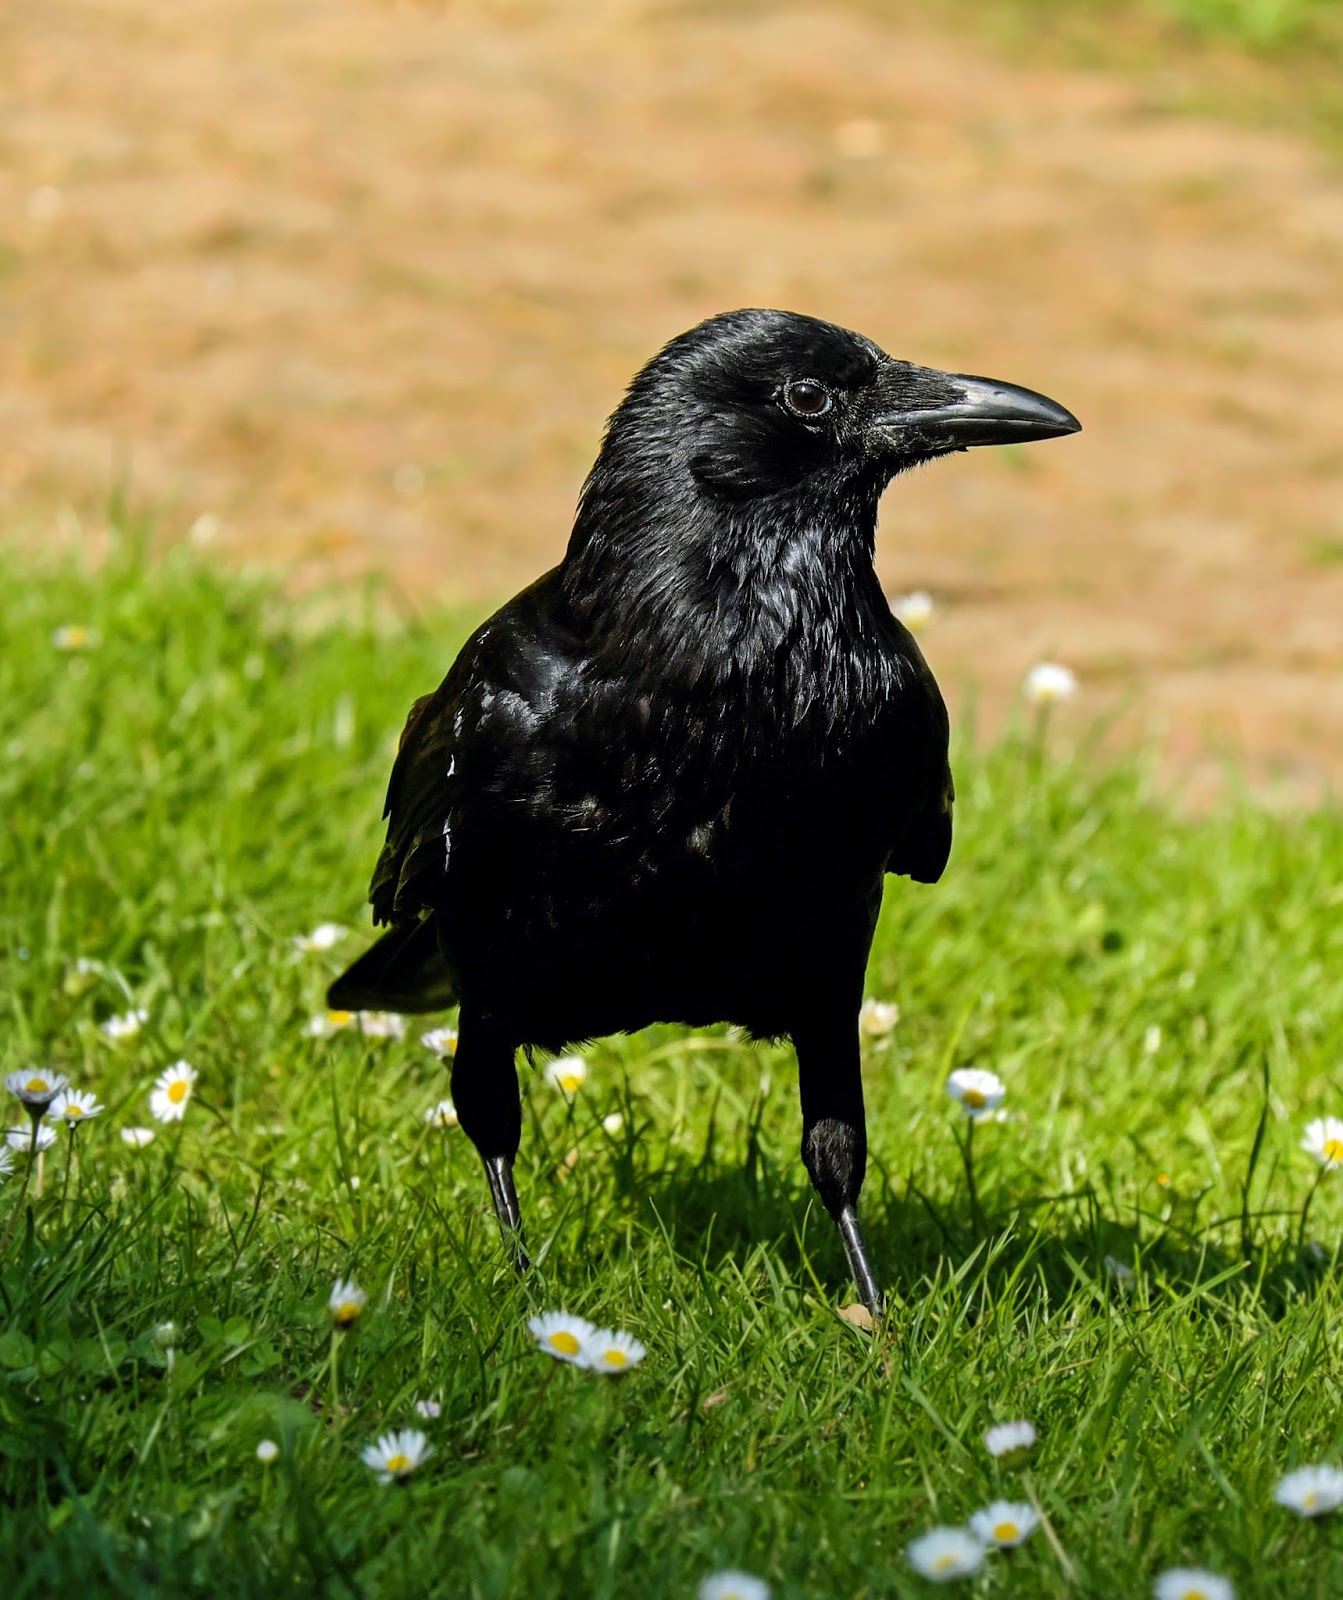 Picture of a rook bird.